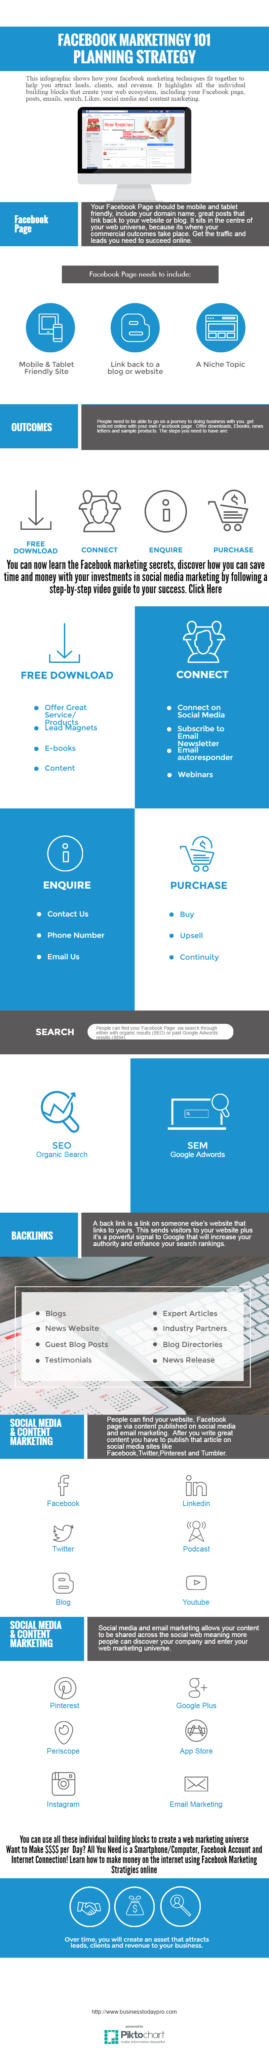 facebook- marketing-infographic